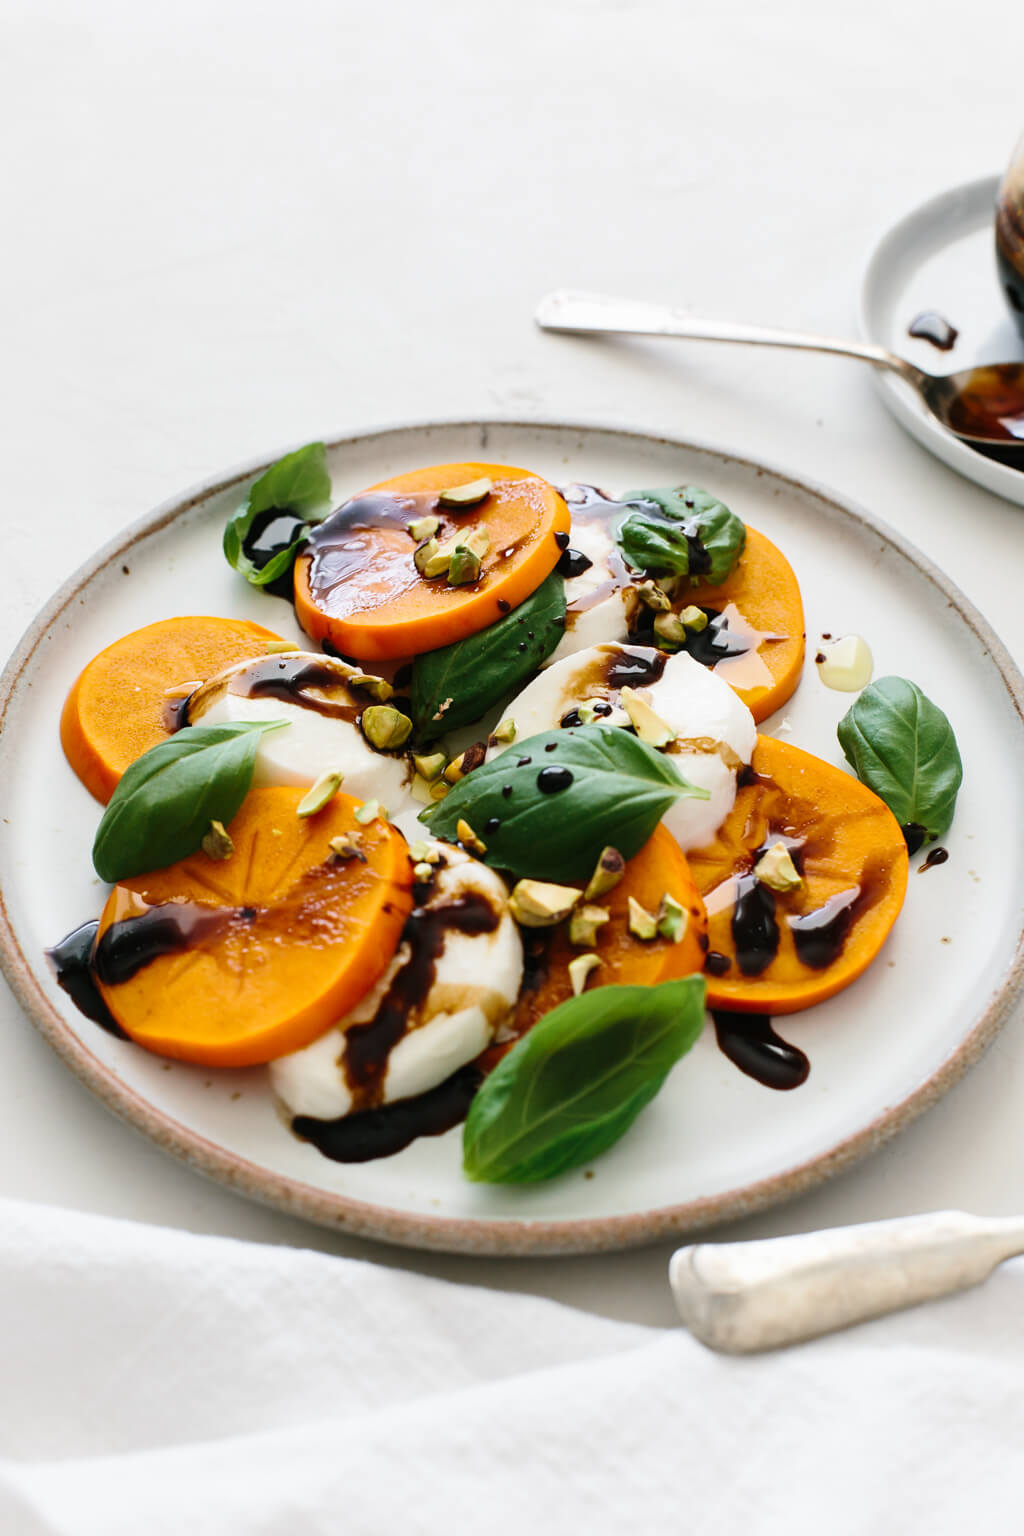 Persimmon Caprese is the perfect fall and winter appetizer or healthy salad. It's bright, flavorful, beautiful and easy to make!